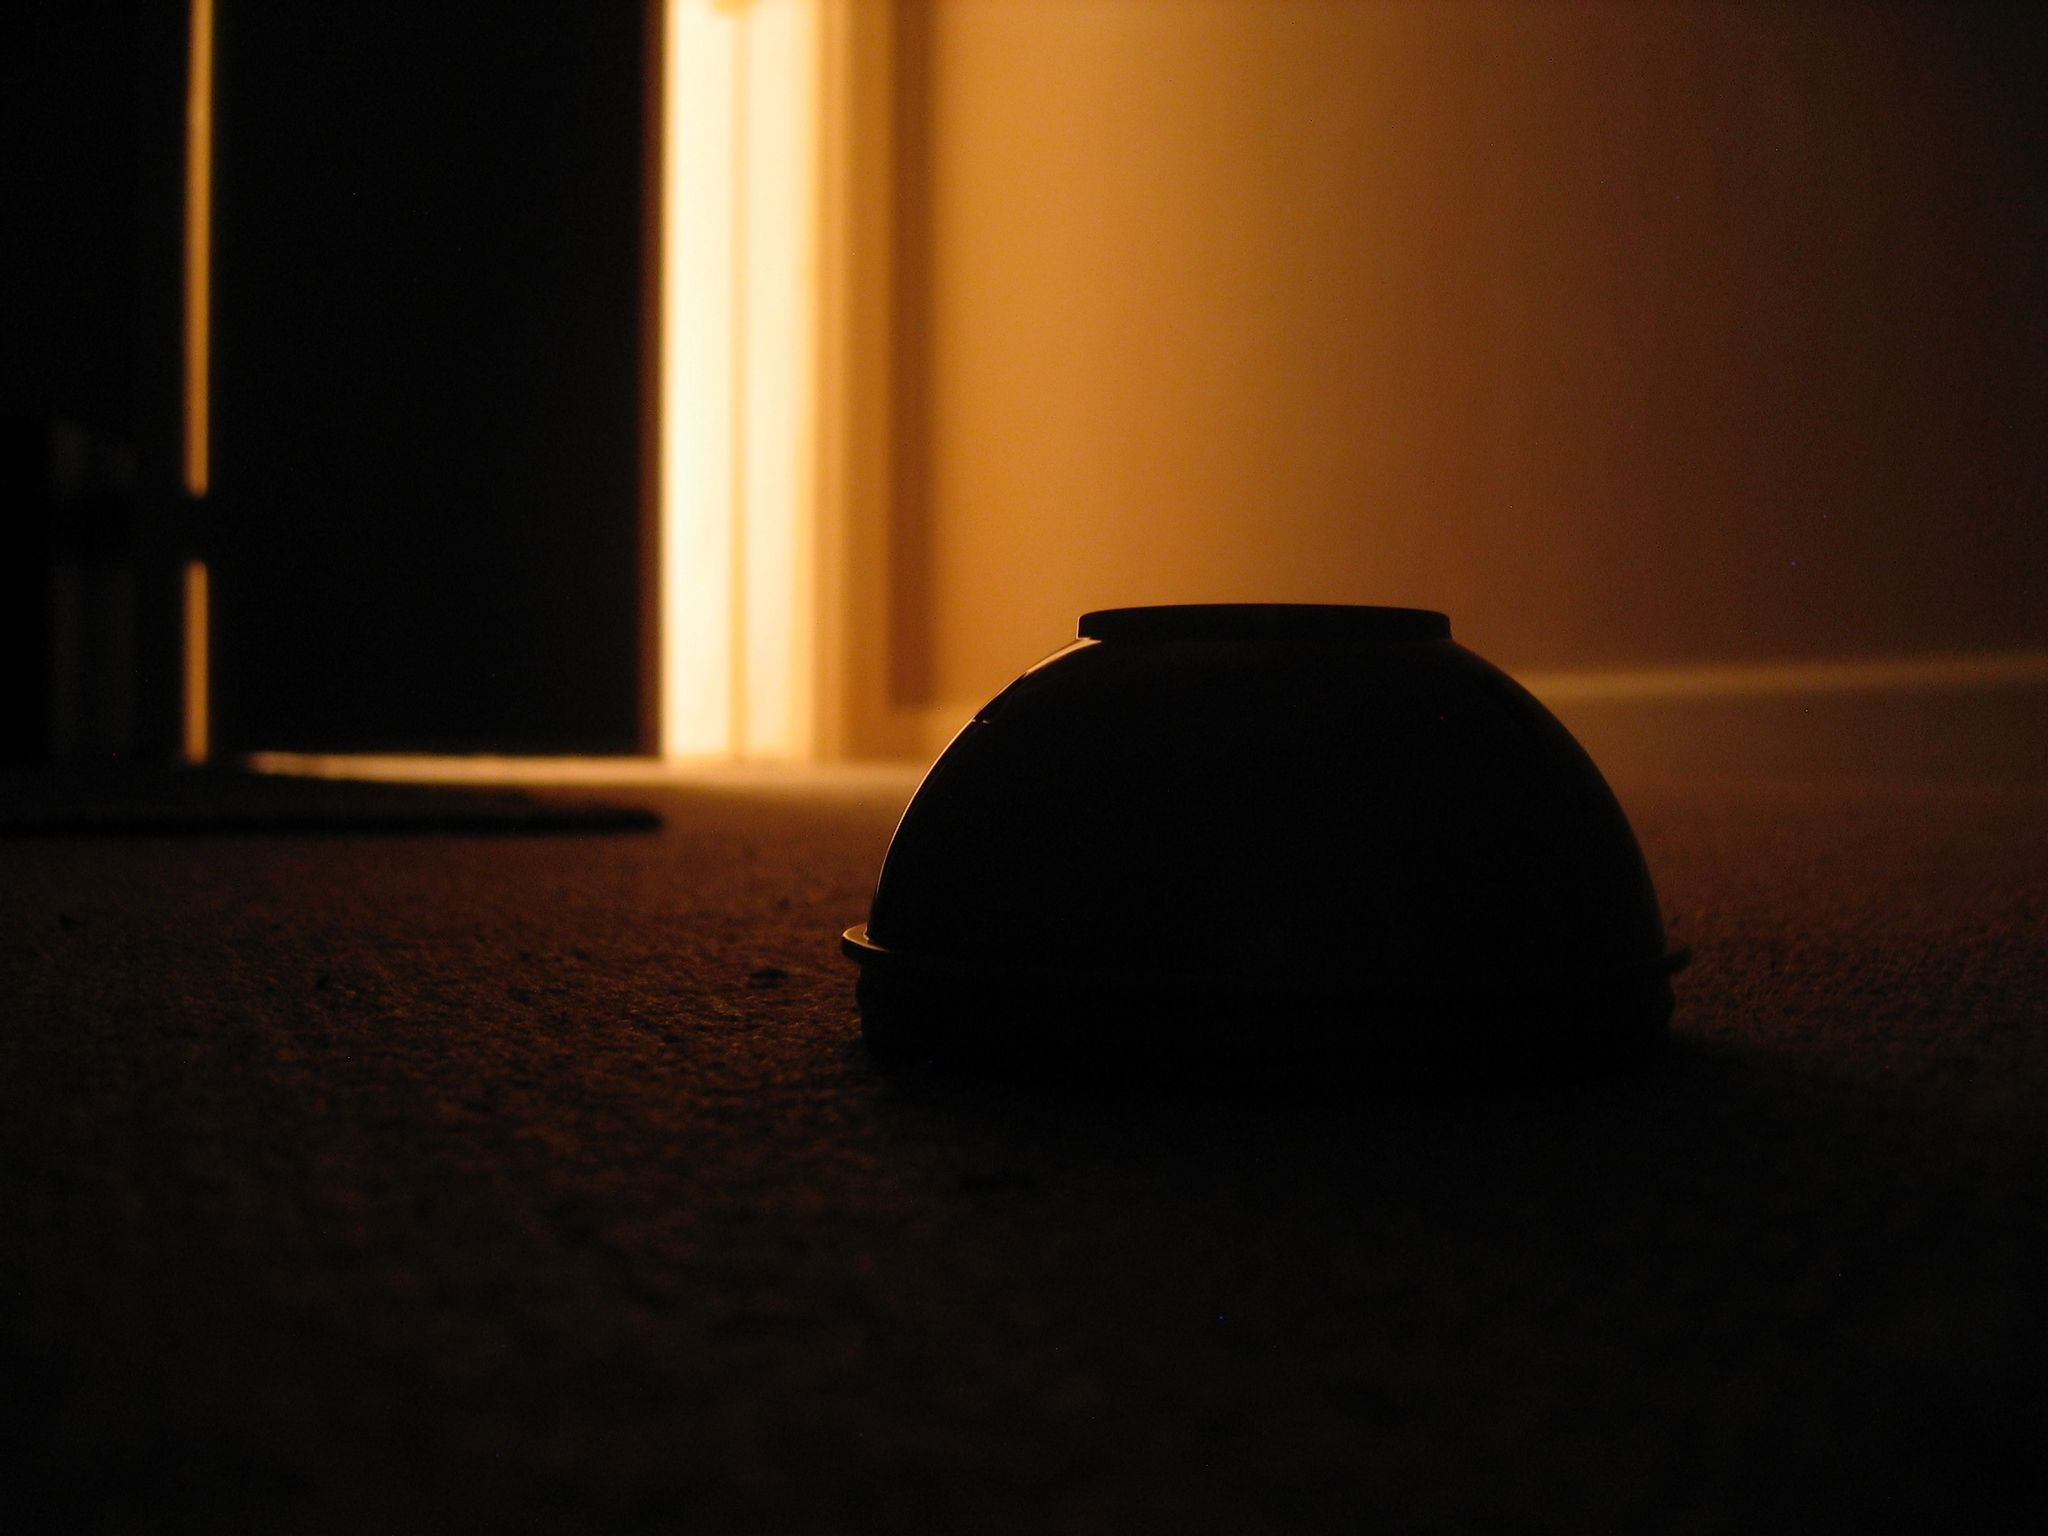 A long exposure photo looking out towards a partially-closed door, taken with the camera sitting on the floor. The room is dark and there's very warm light coming in from the doorway. An upside-down plastic toy bowl is sharply in focus in the middle of the frame, and the door is out of focus. The light is reflecting cleanly off the side of the bowl.